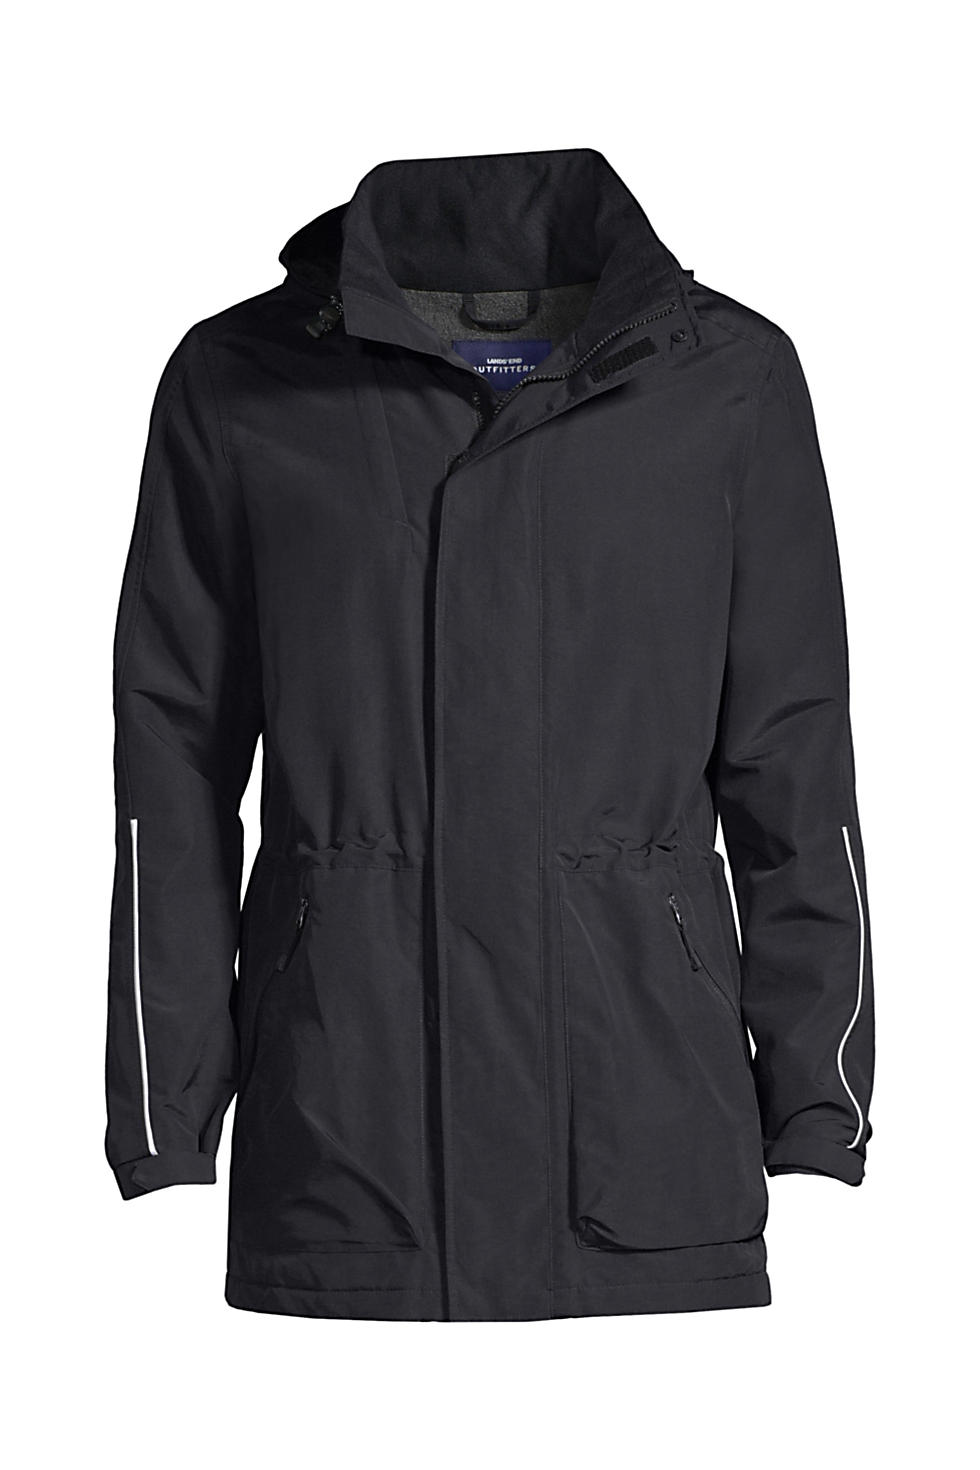 Lands' End Men's Outrigger Reflective Parka